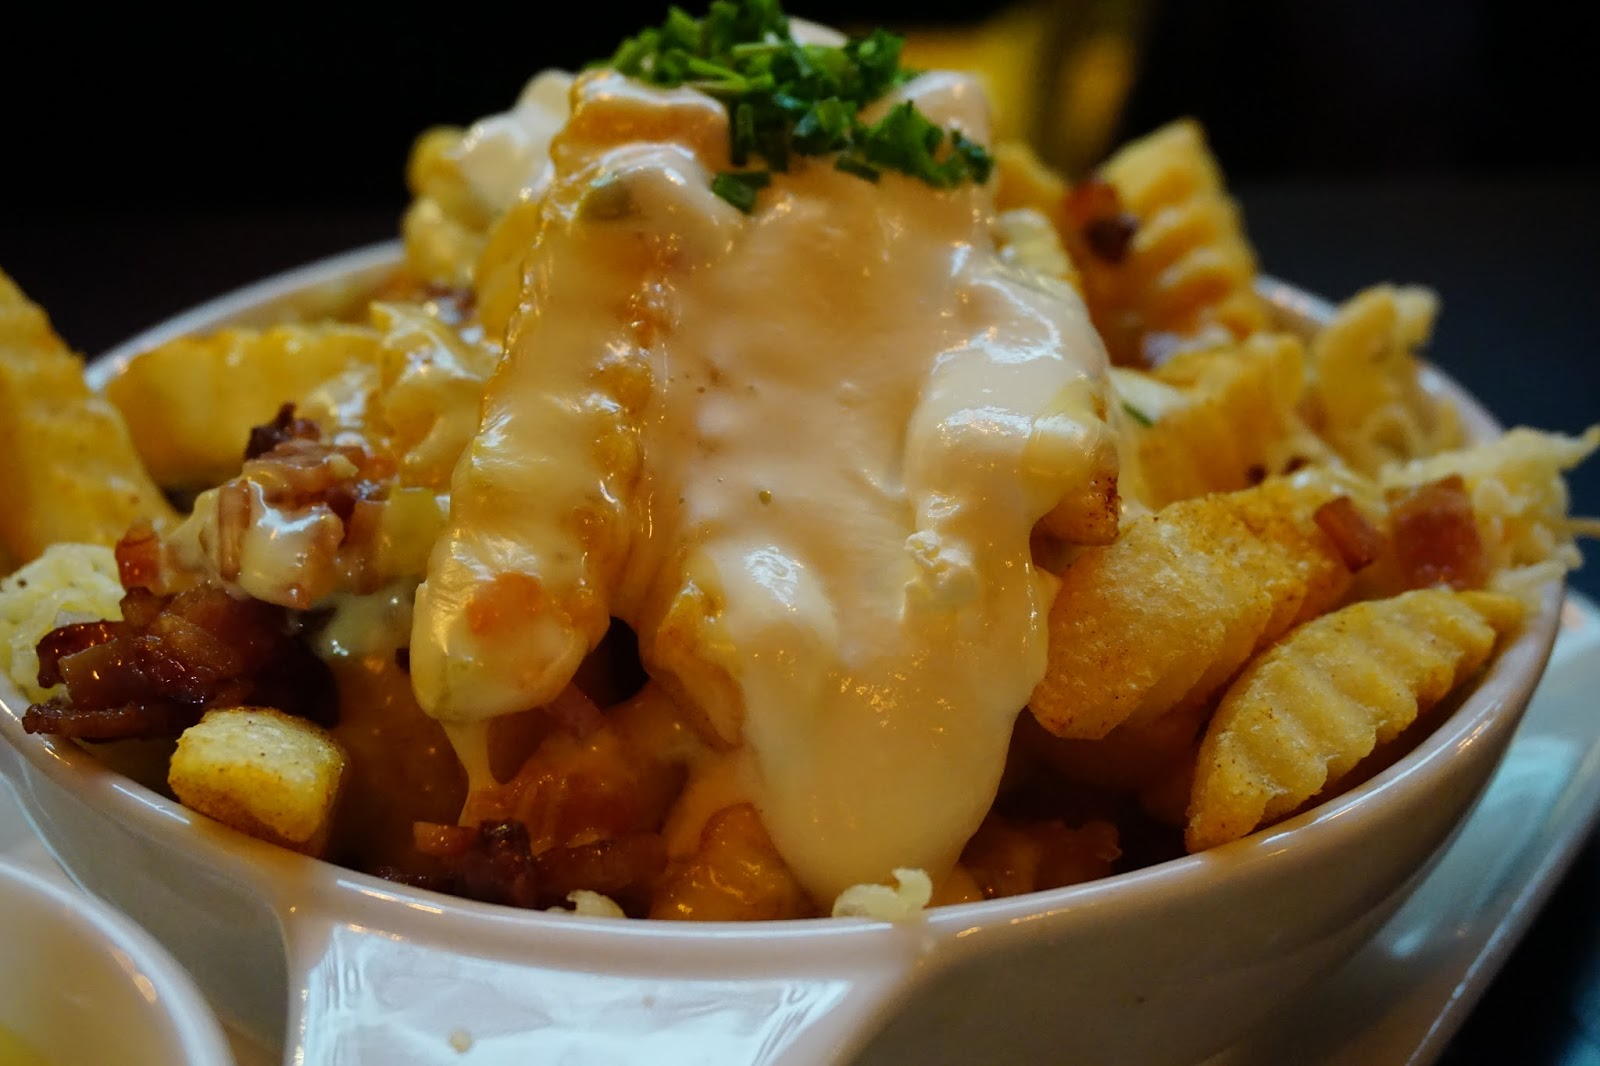 Cheese fries at The Curious Squire, North Adelaide